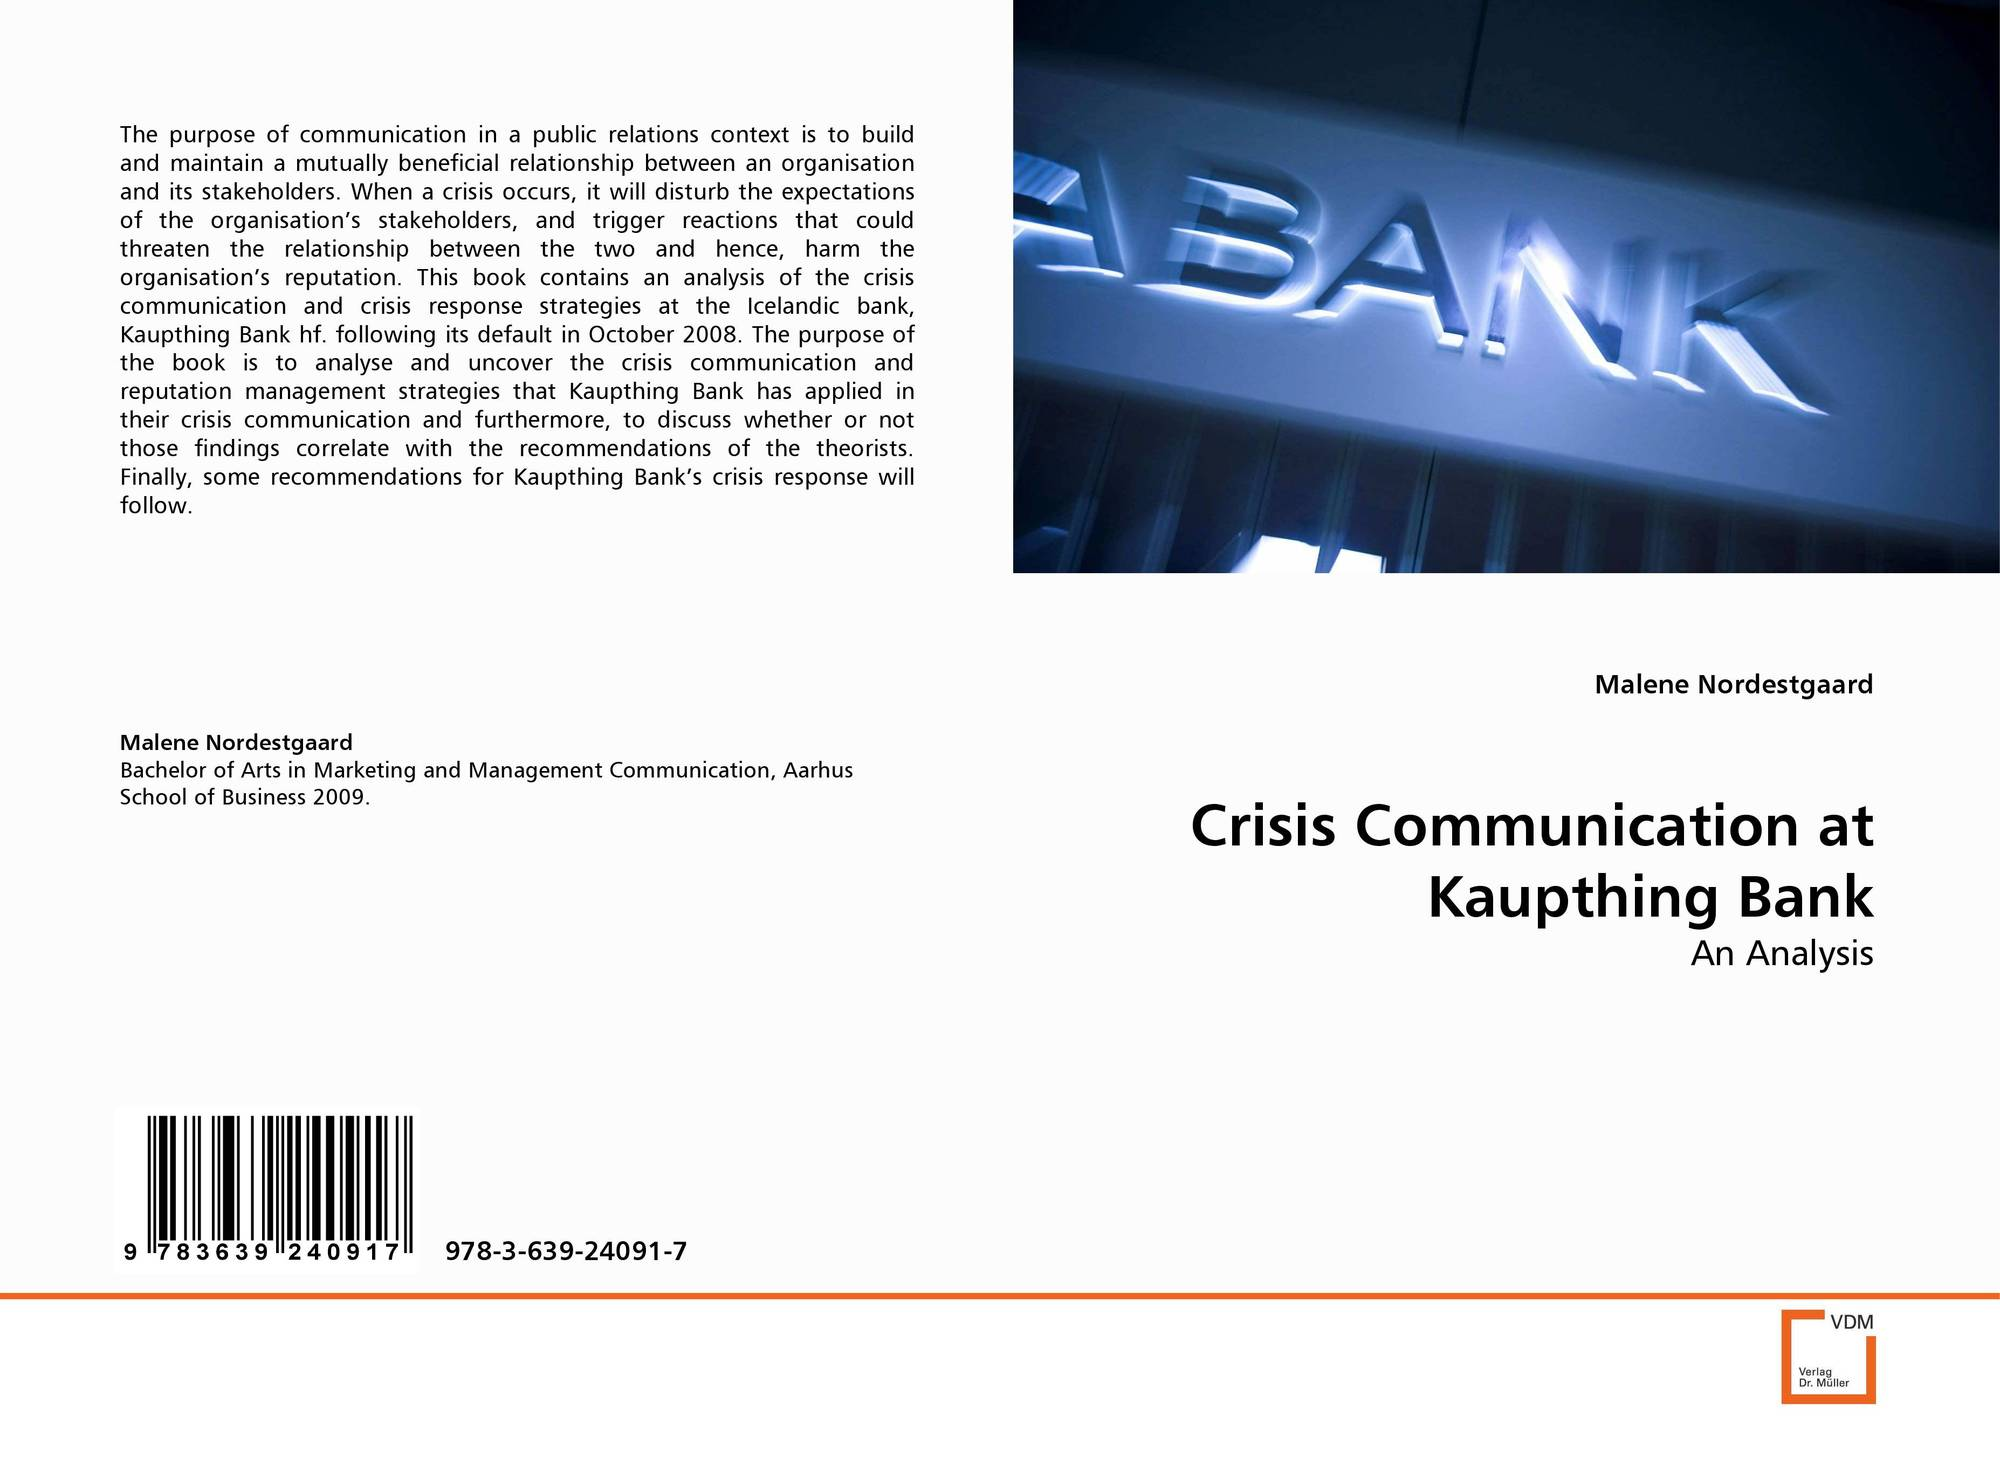 crisiscommunication final Theorizing crisis communication presents a comprehensive review and critique  a final word 259  and useful statement on the foundations of crisiscommunication.